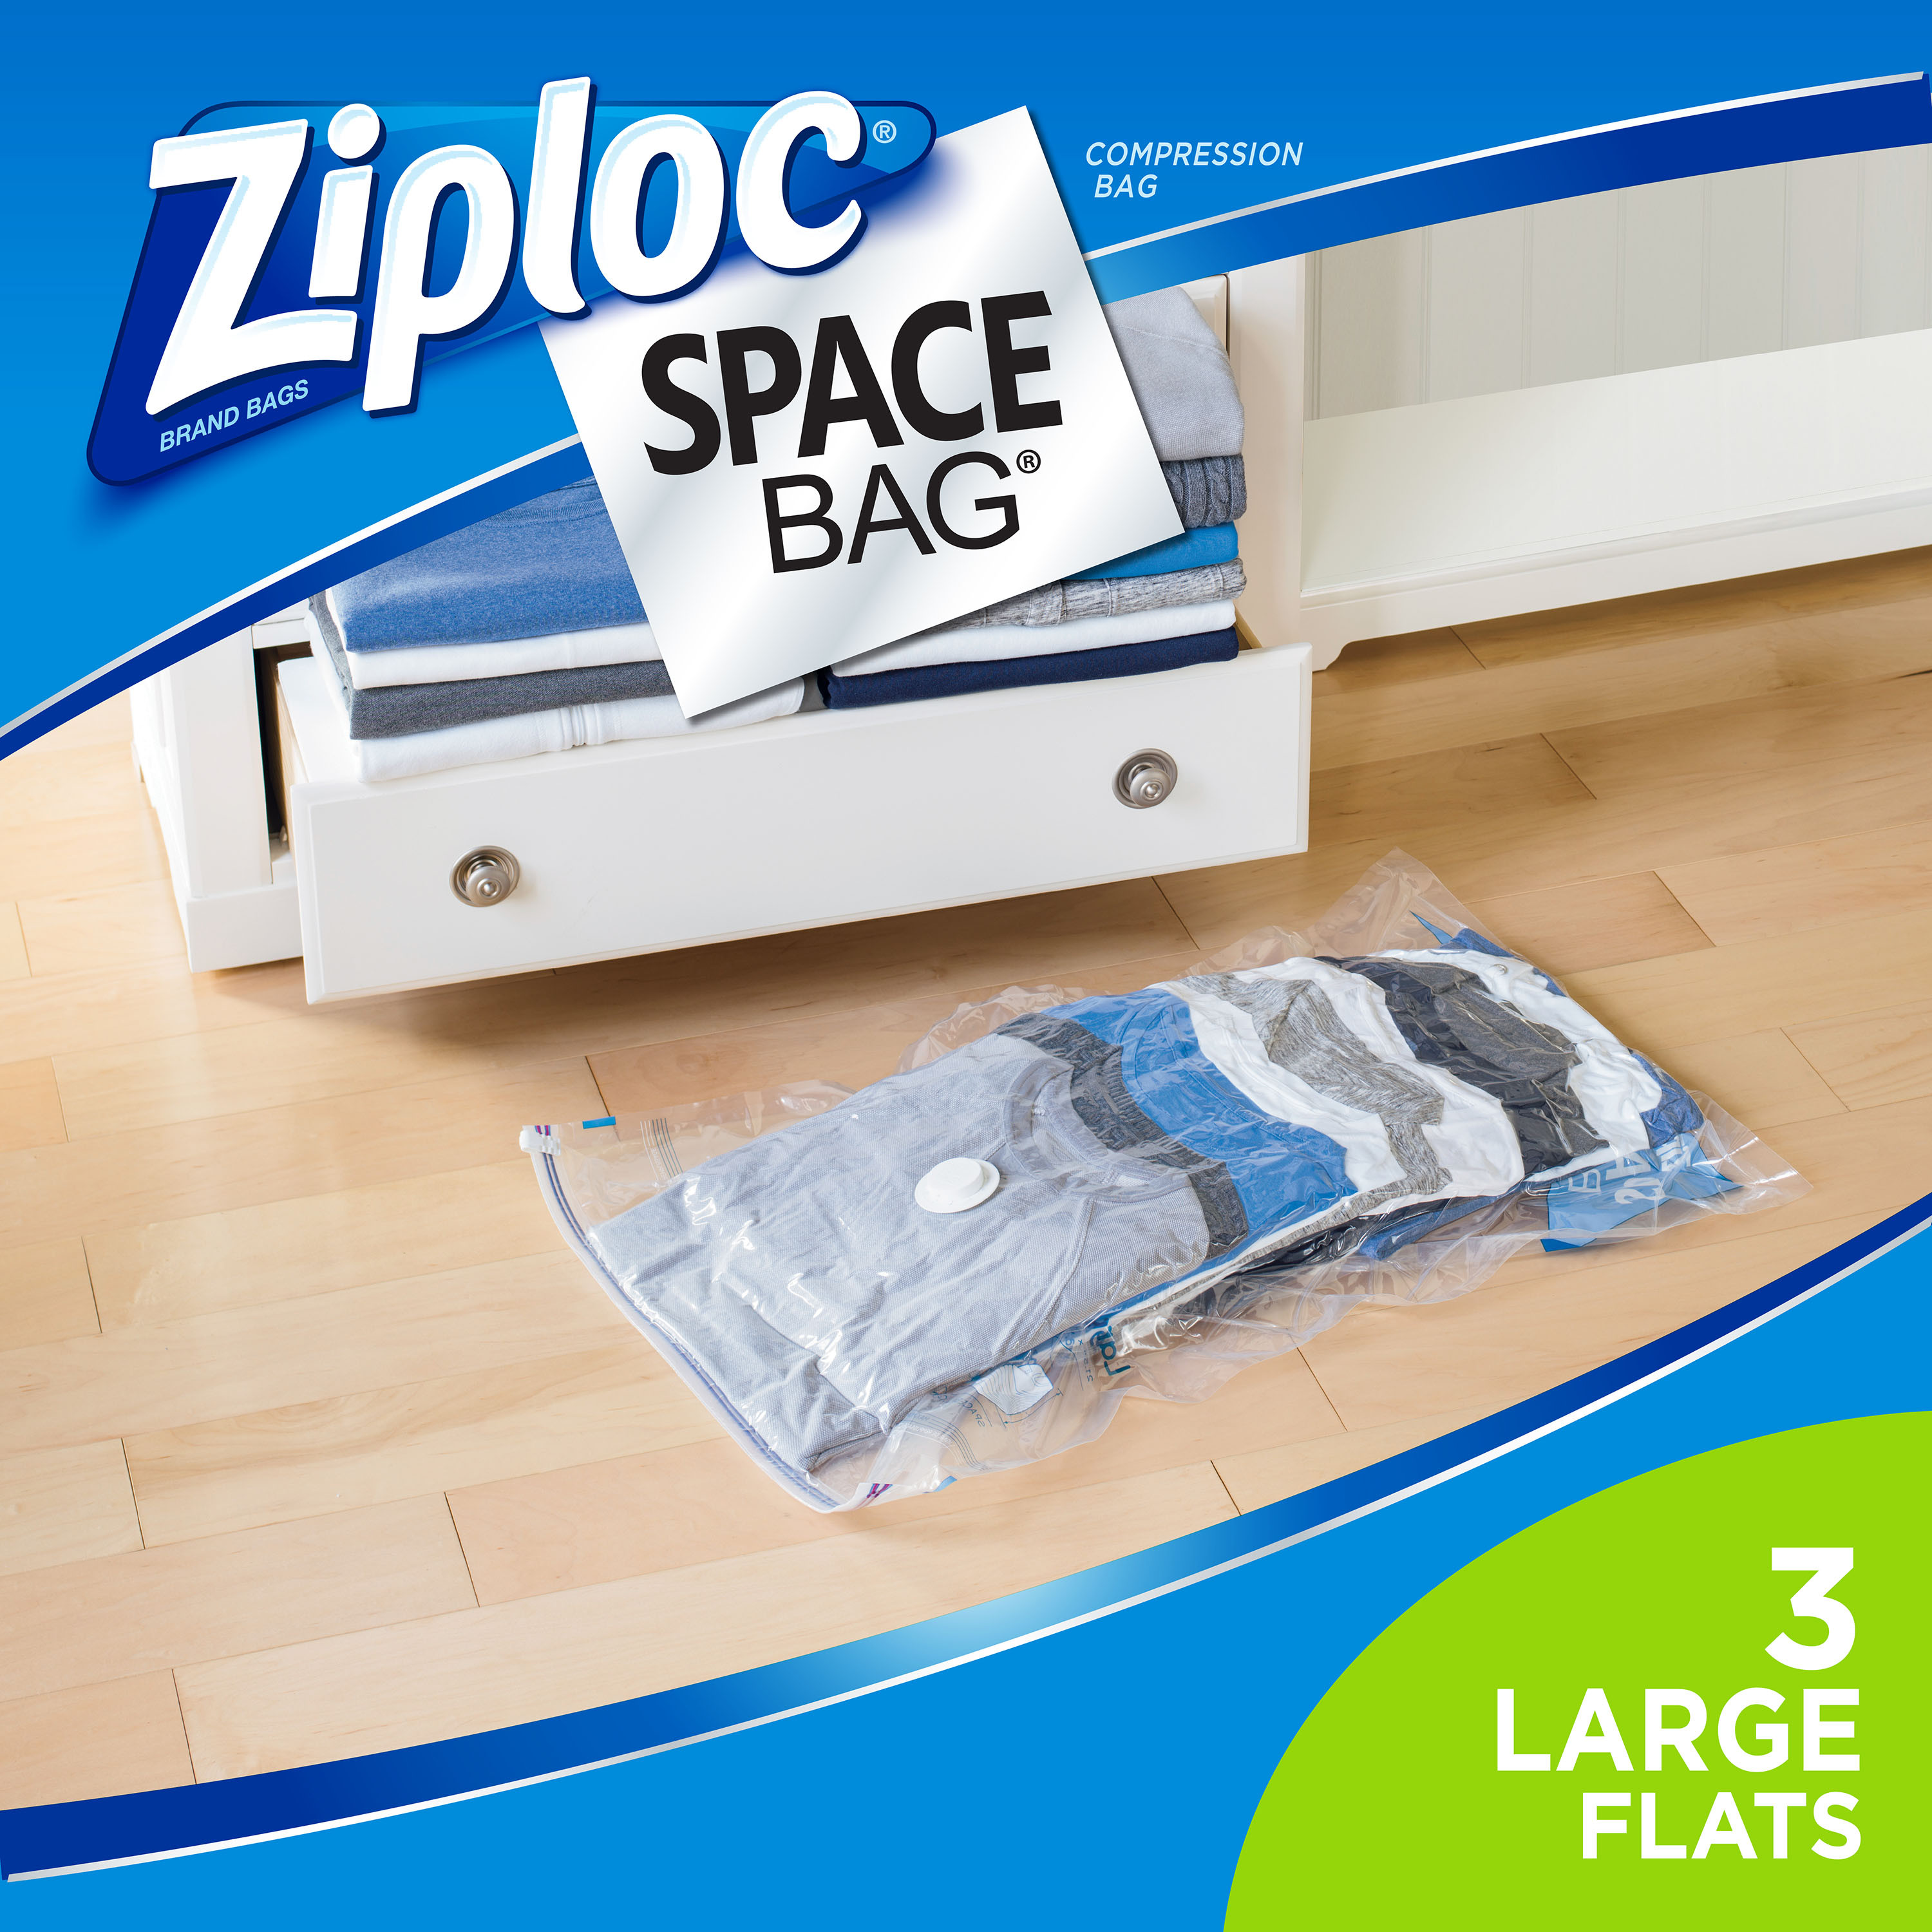 Ziploc Space Bag, Large Flat, 3 count